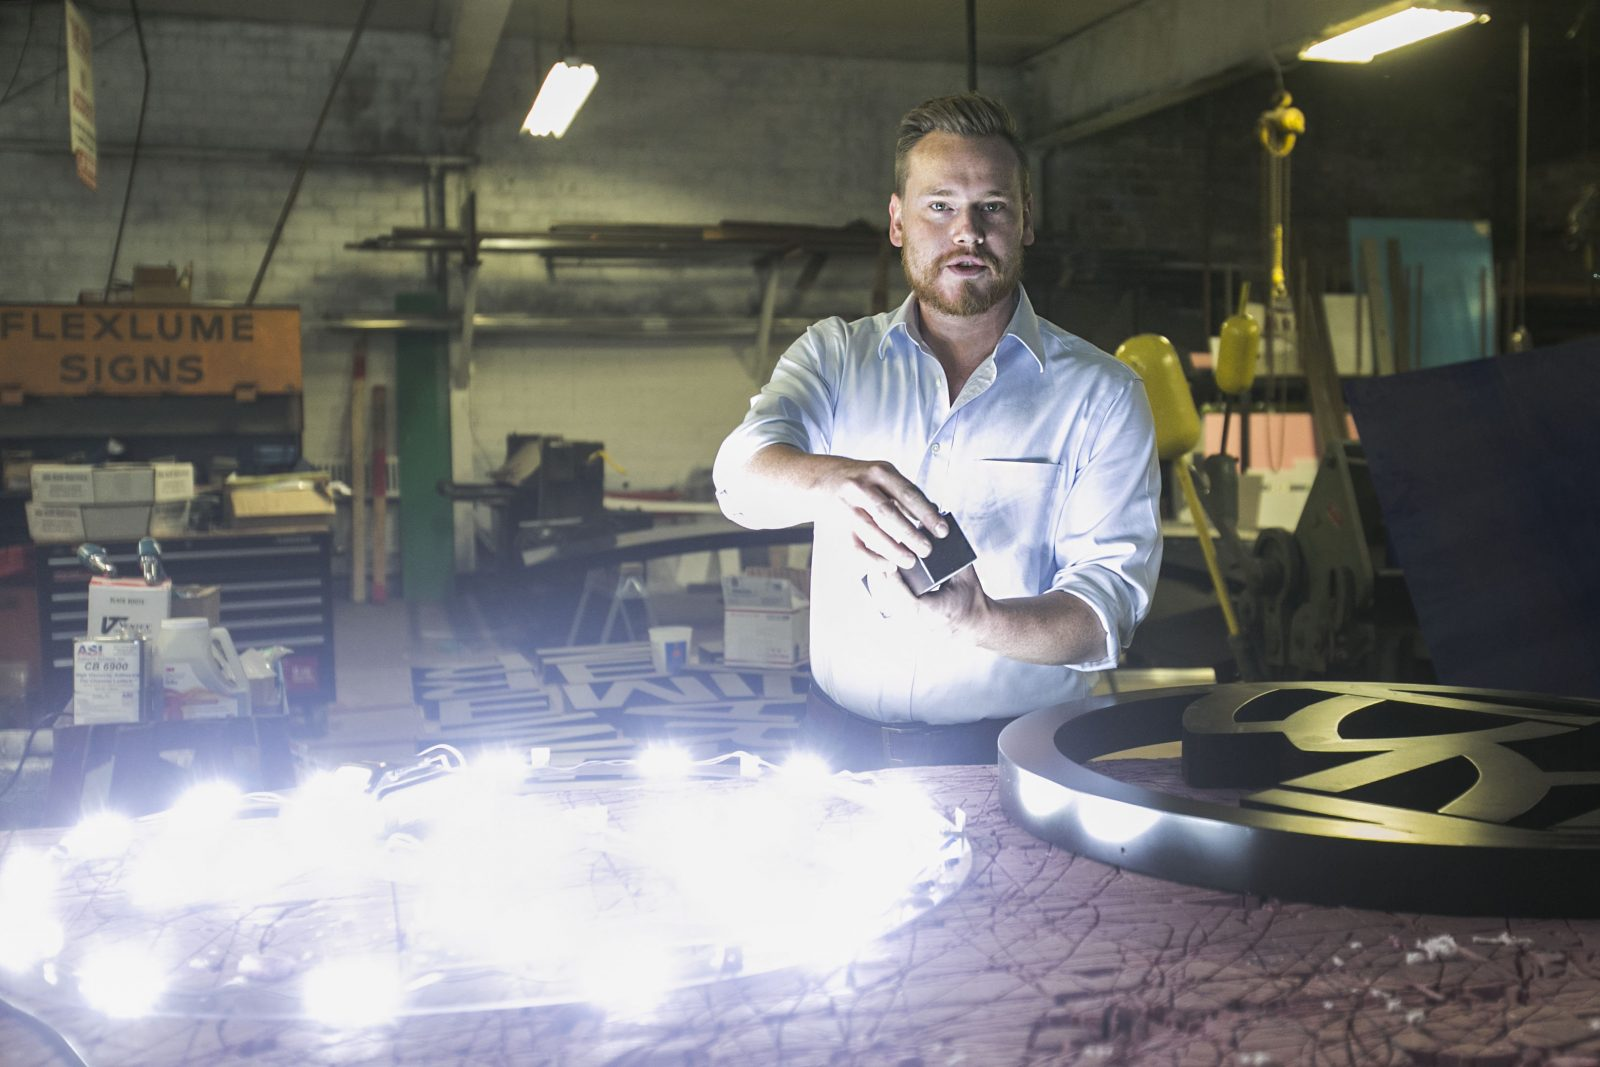 Flexlume's innovation keeps sign company shining bright for more